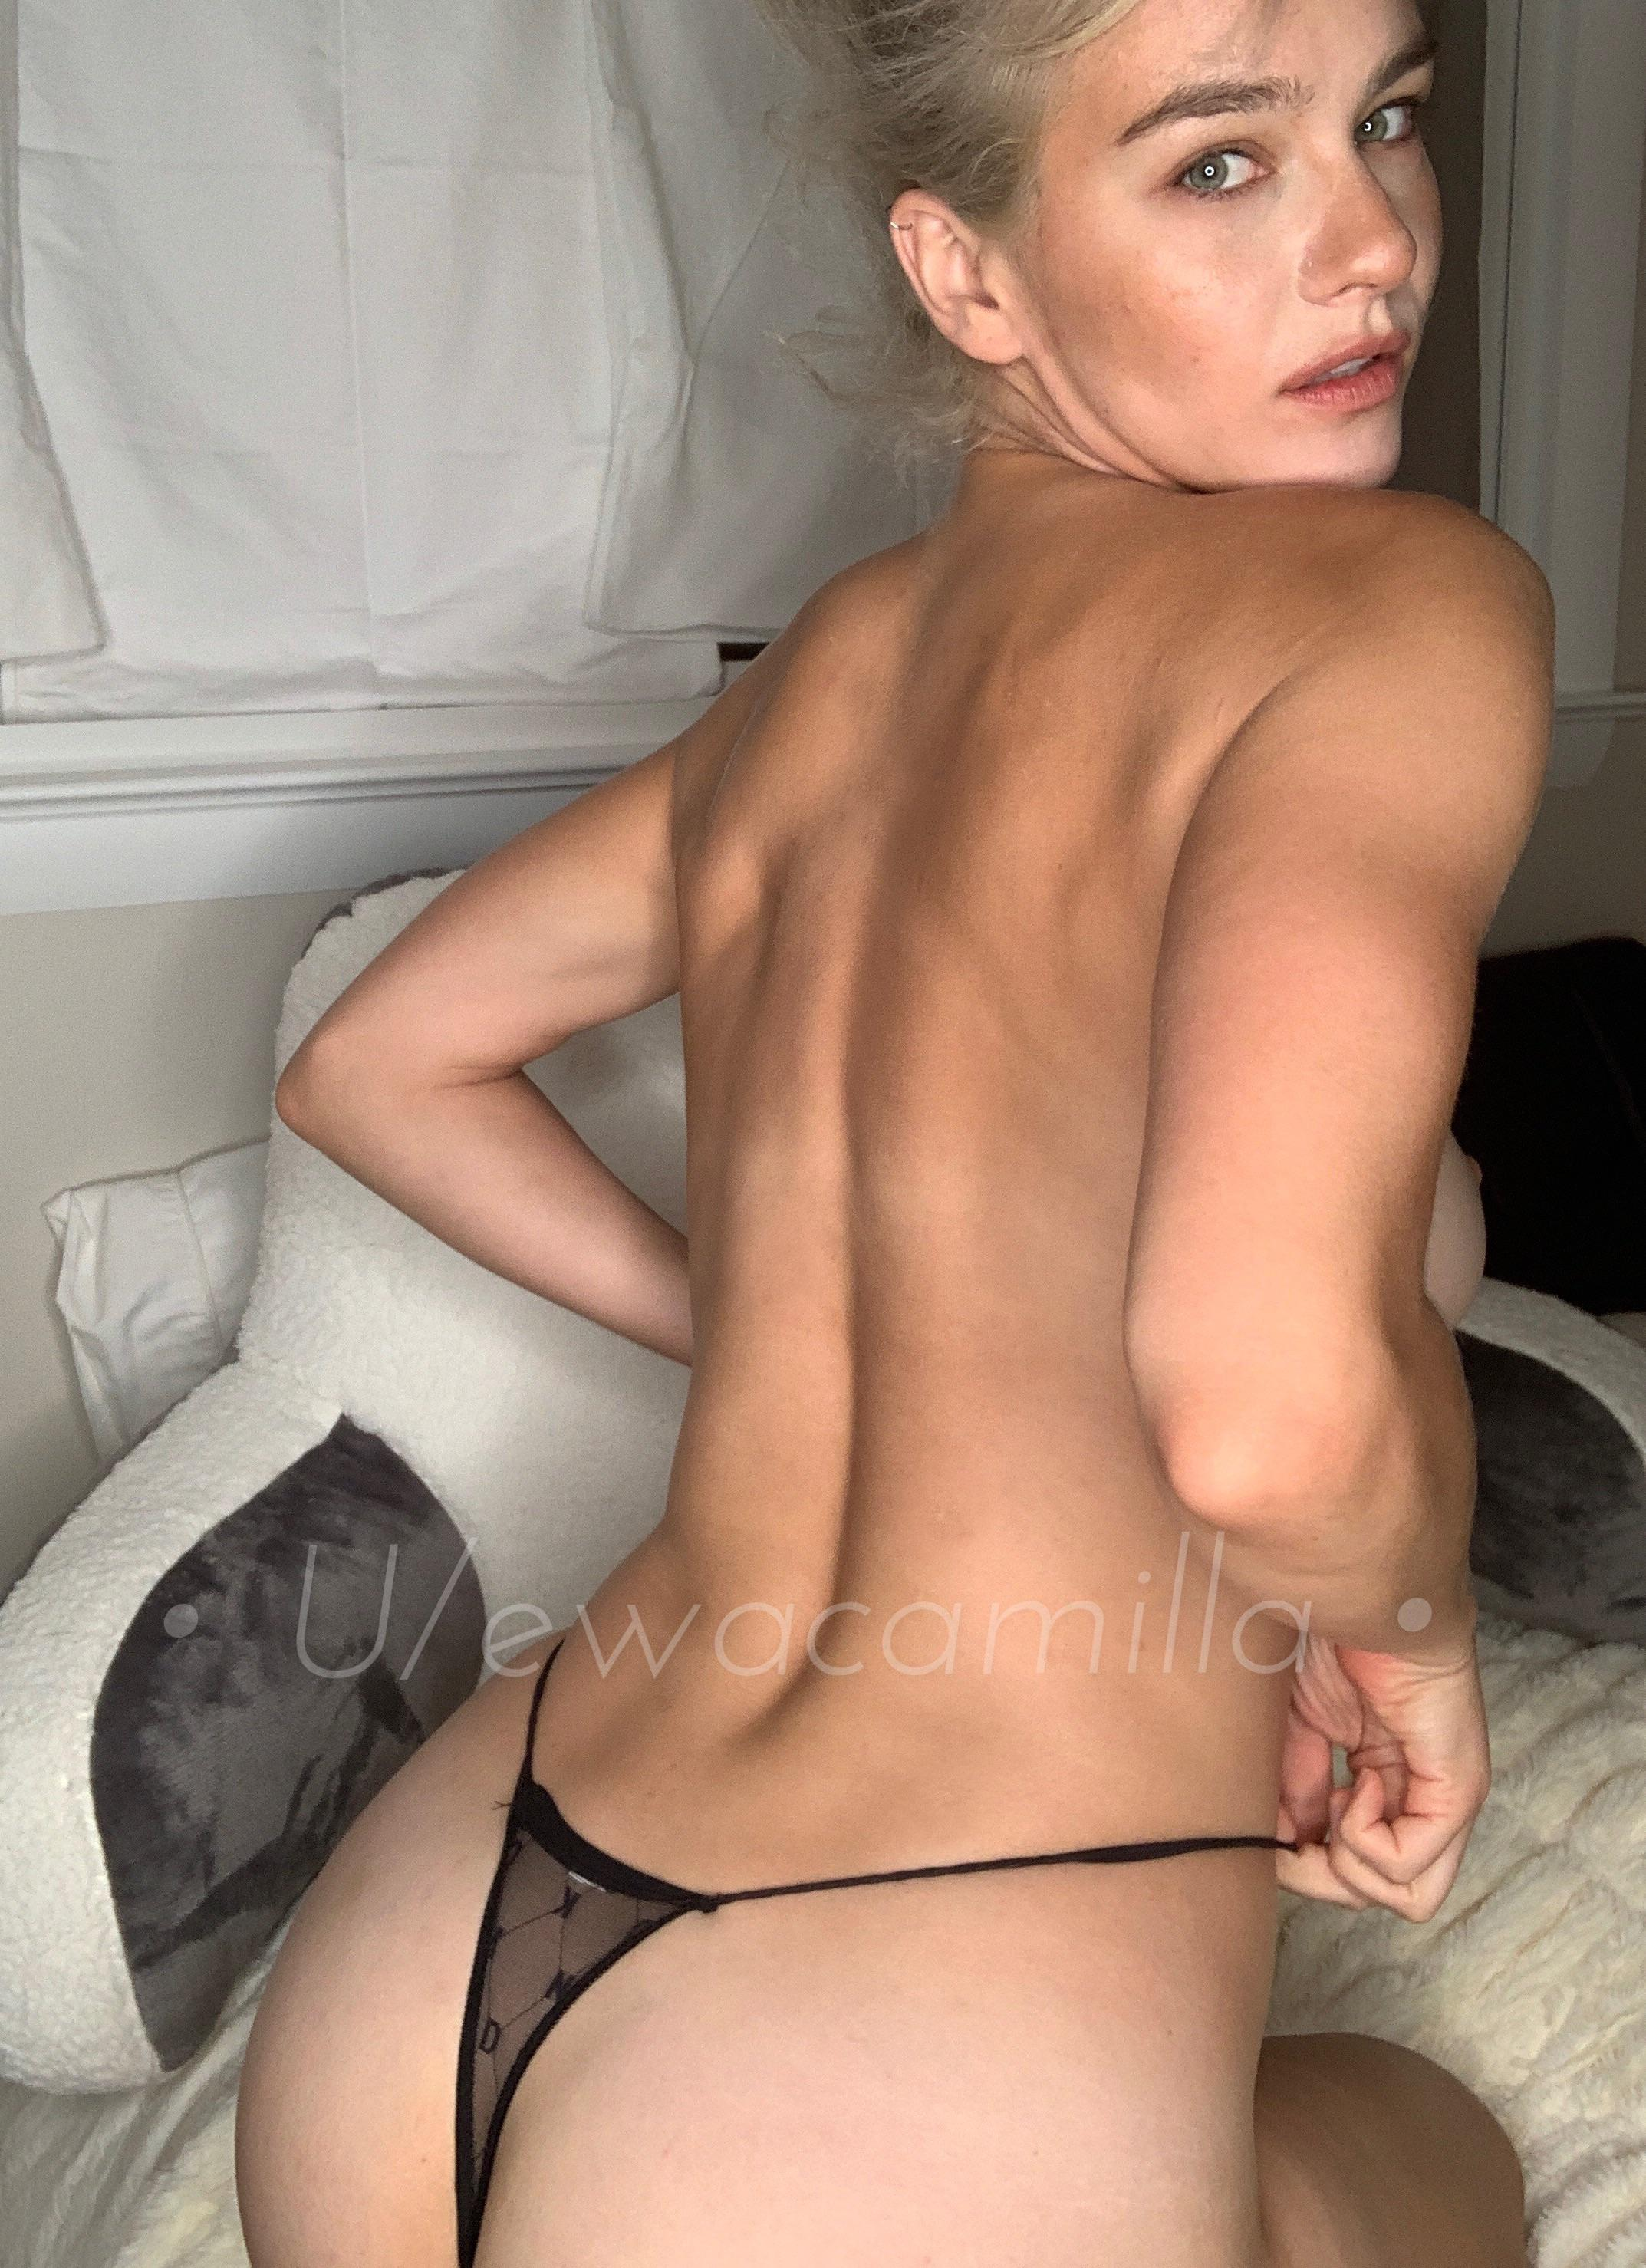 Baby, Do You Think This Thong Suits Me Or Do You Need To See More Of My Ass? 😯 OC